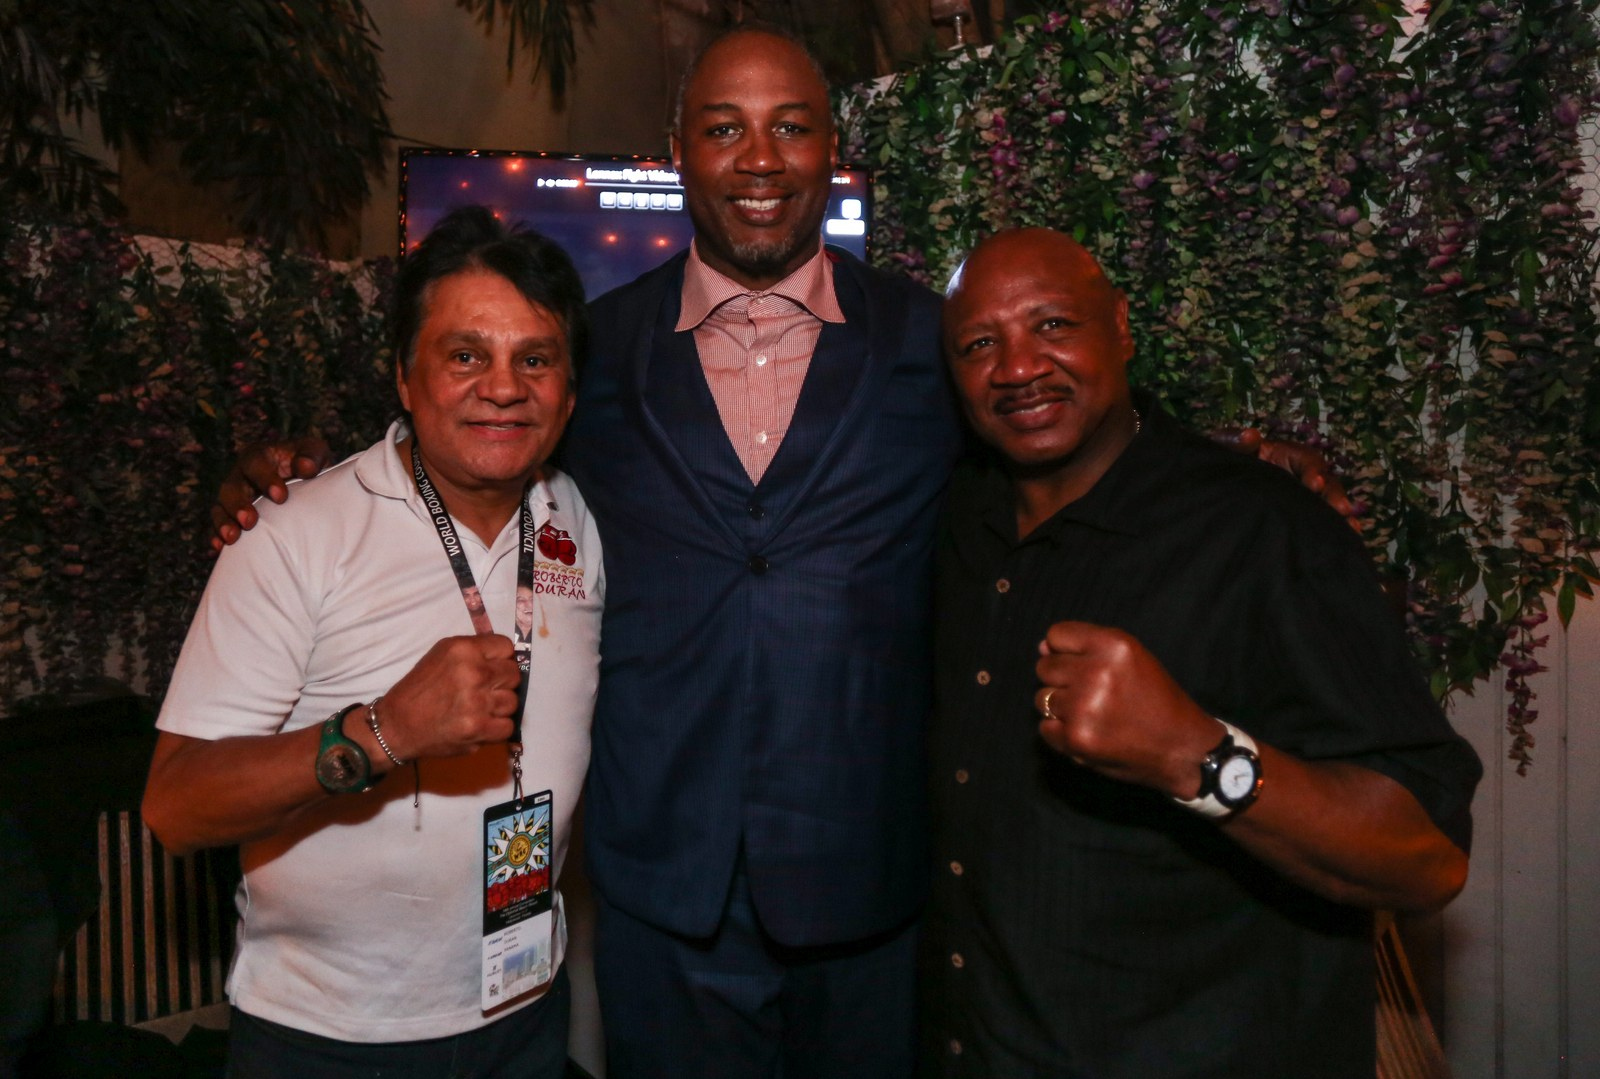 Haute Living and Hublot host an evening with Lennox Lewis all photos by Thaddaeus McAdams / ExclusiveAccess.Net